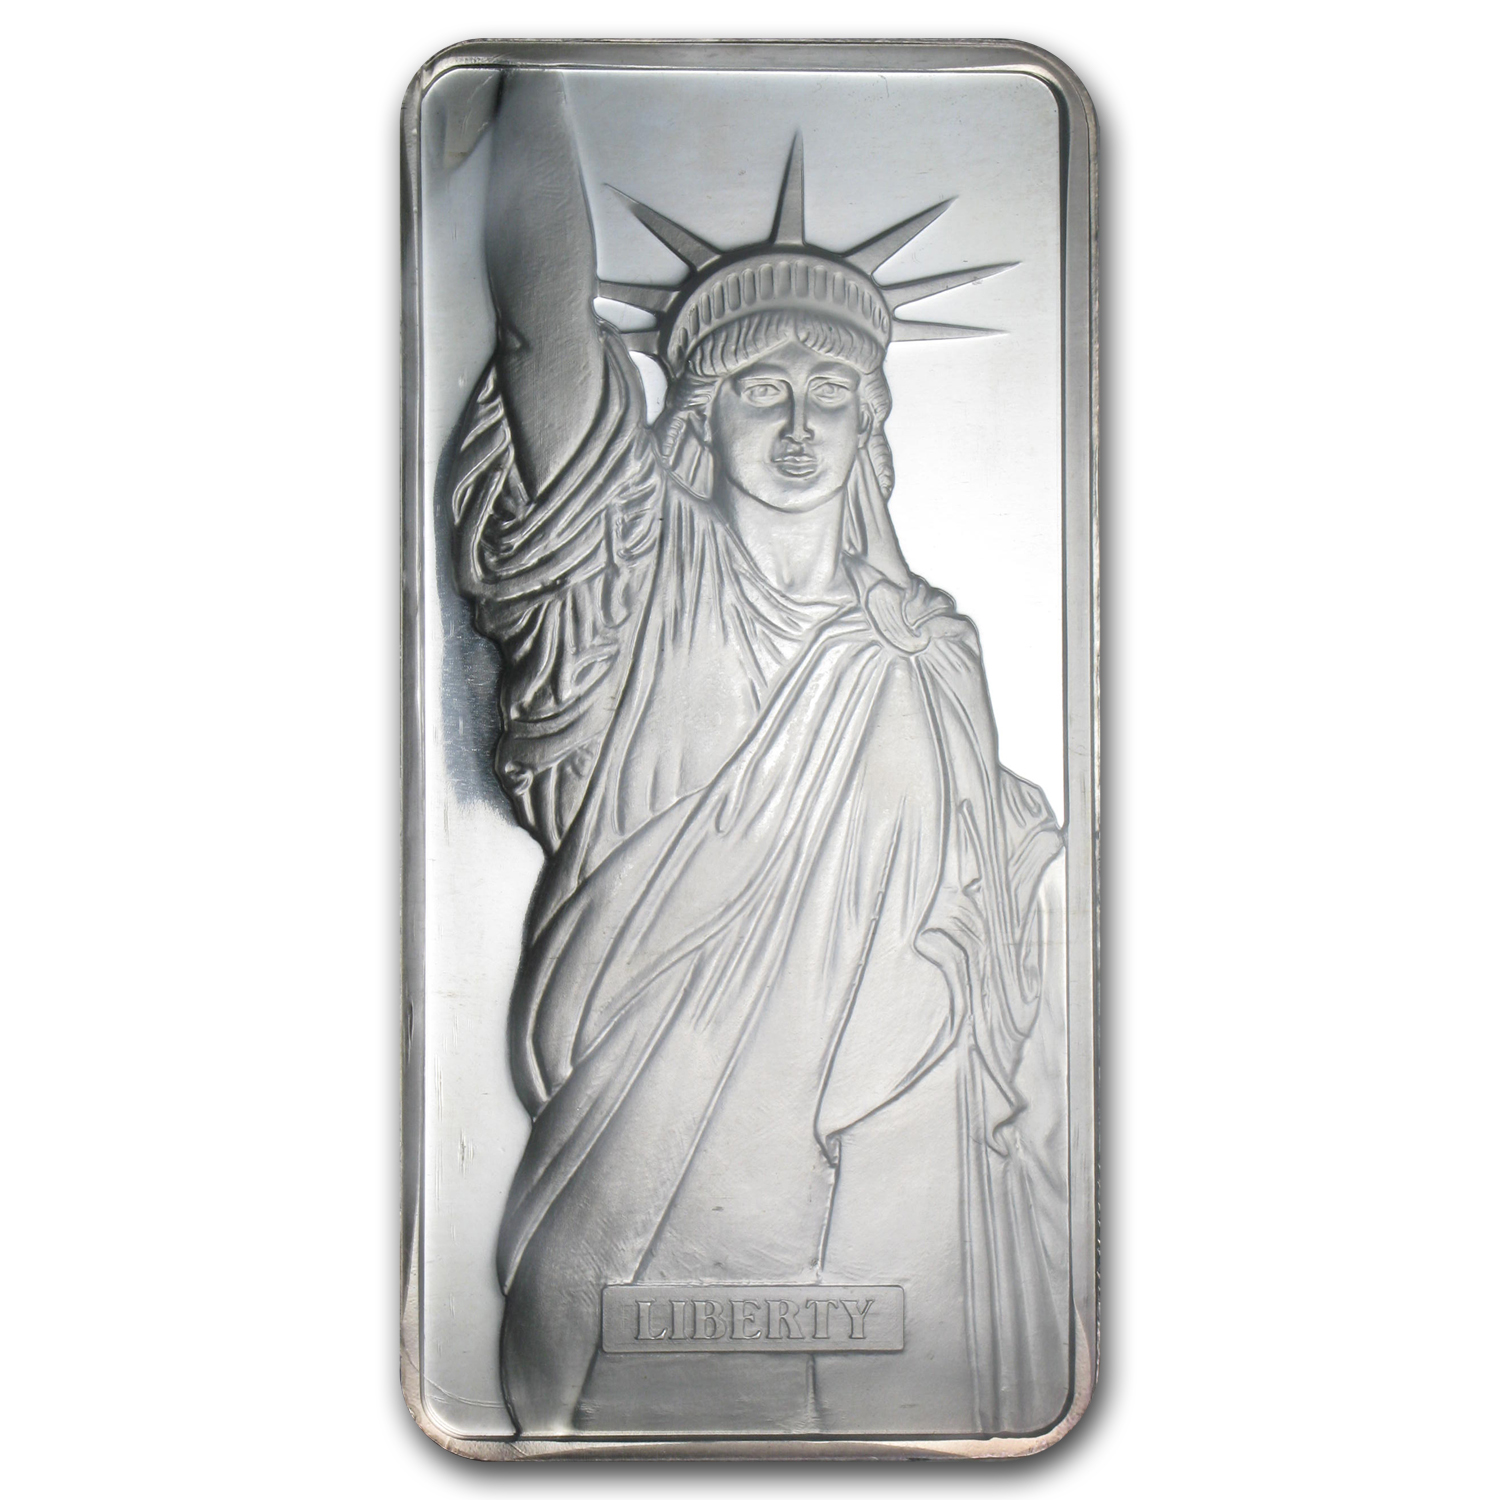 10 oz Silver Bar - Johnson Matthey (Statue of Liberty/MTB)